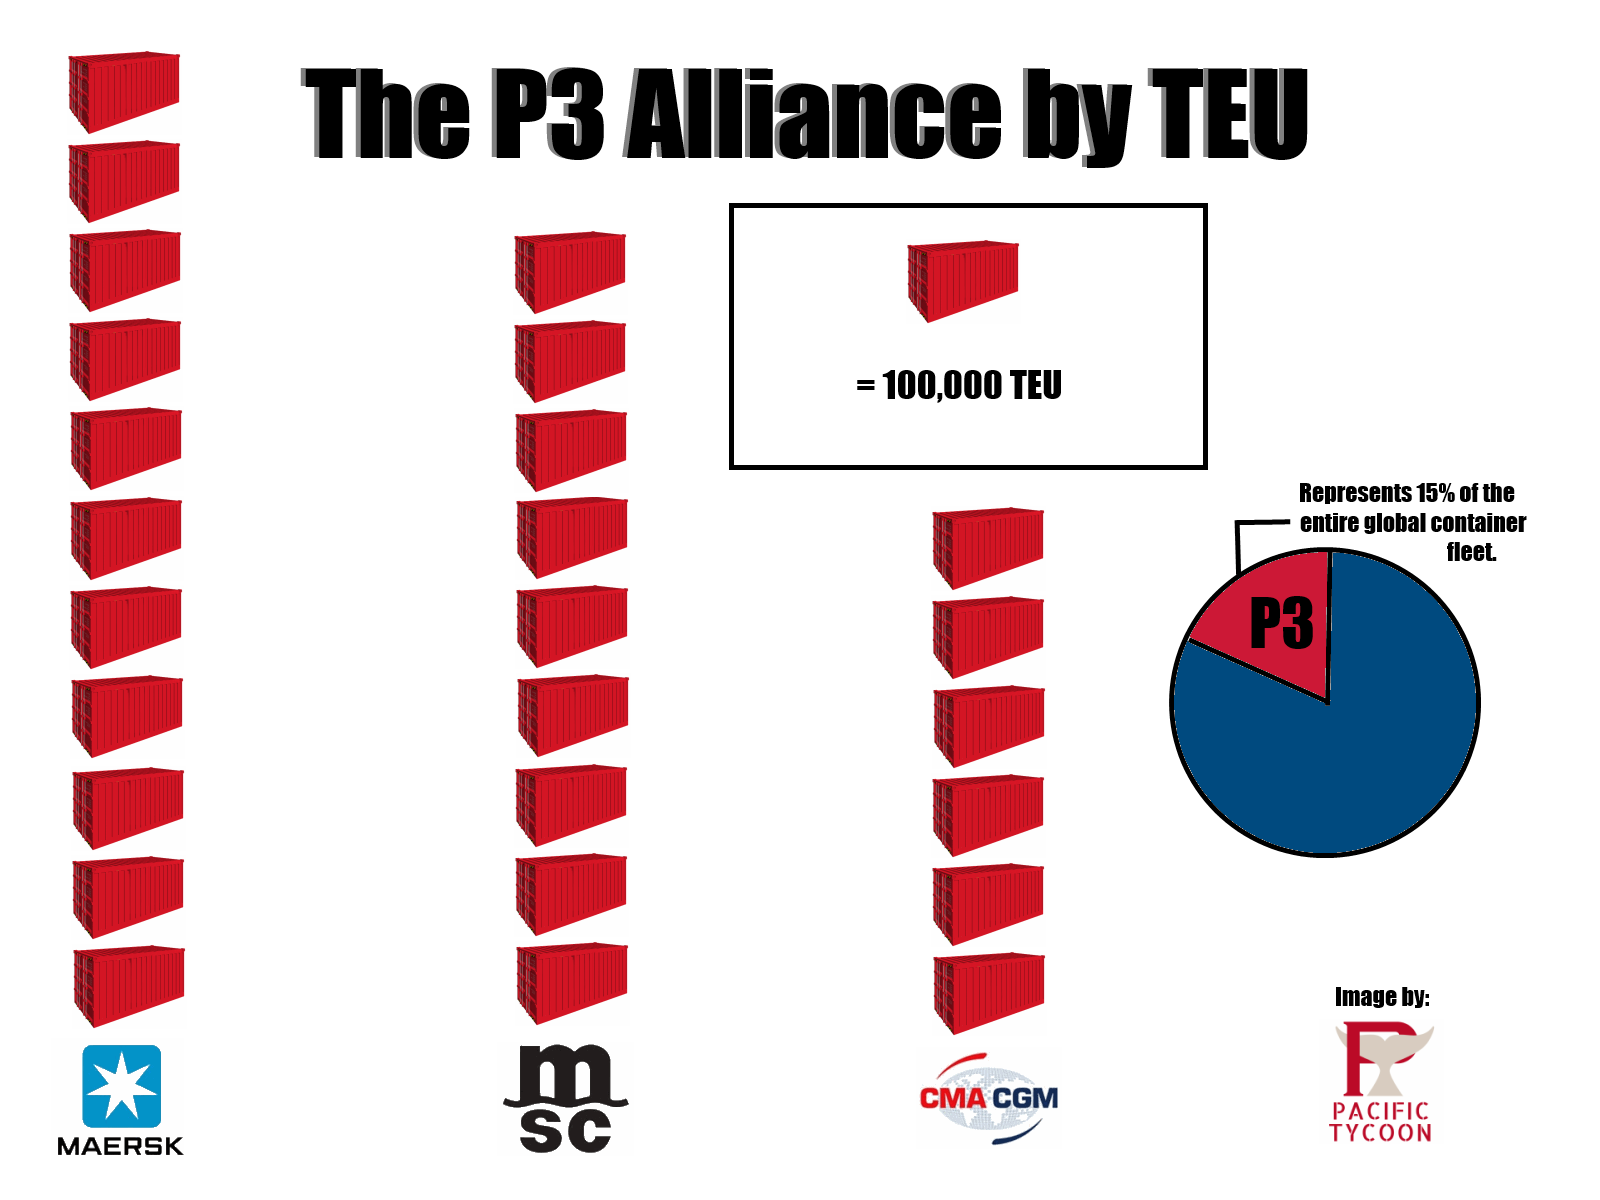 the p3 alliance by teu